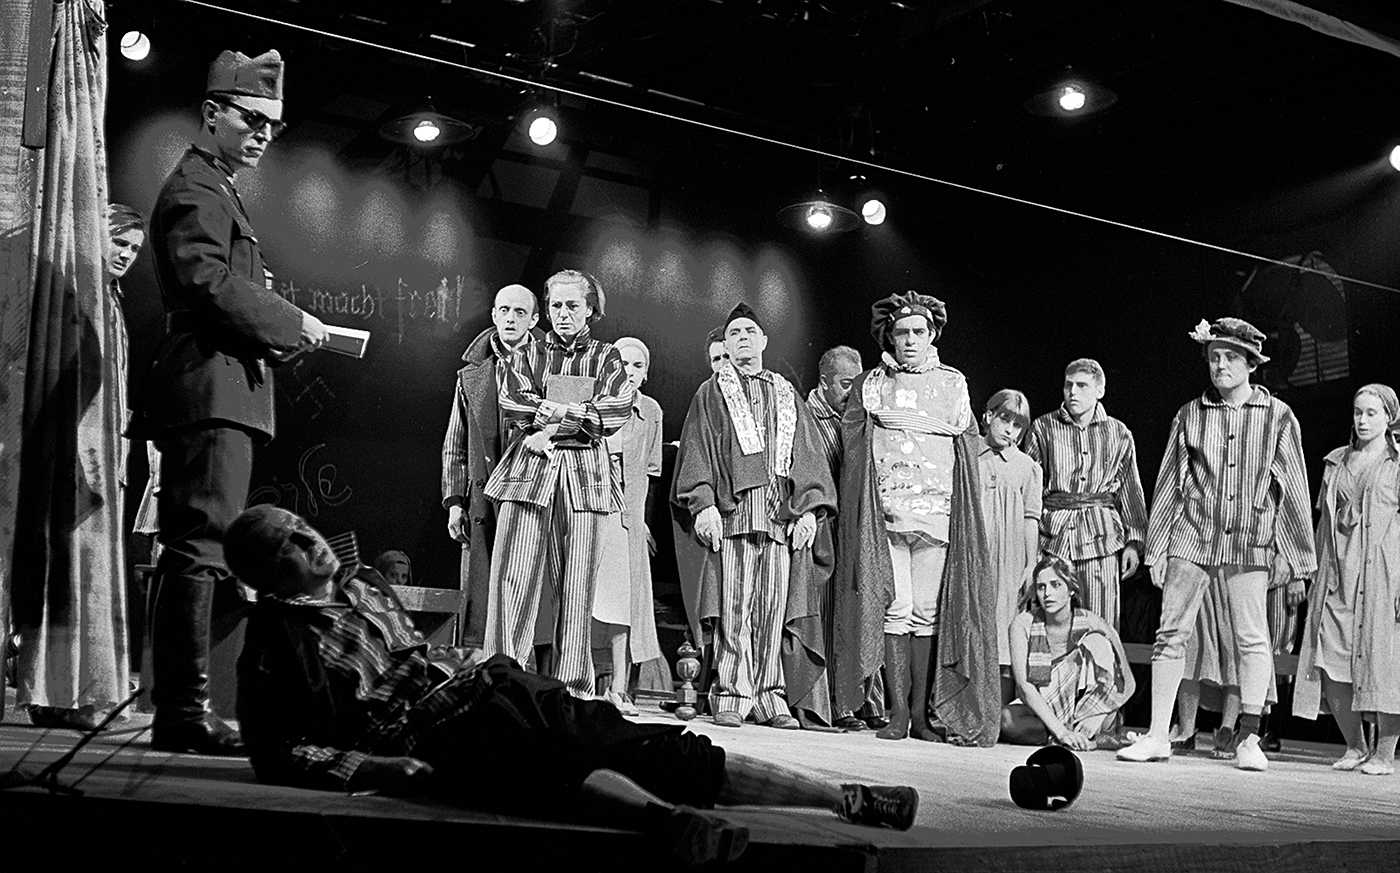 Stockbridge: Summer 1966, A memoir of the Berkshire Theatre Festival's inaugural season — Episode II (of 3): George Tabori's Production of The Merchant of Venice, set in a Nazi concentration camp